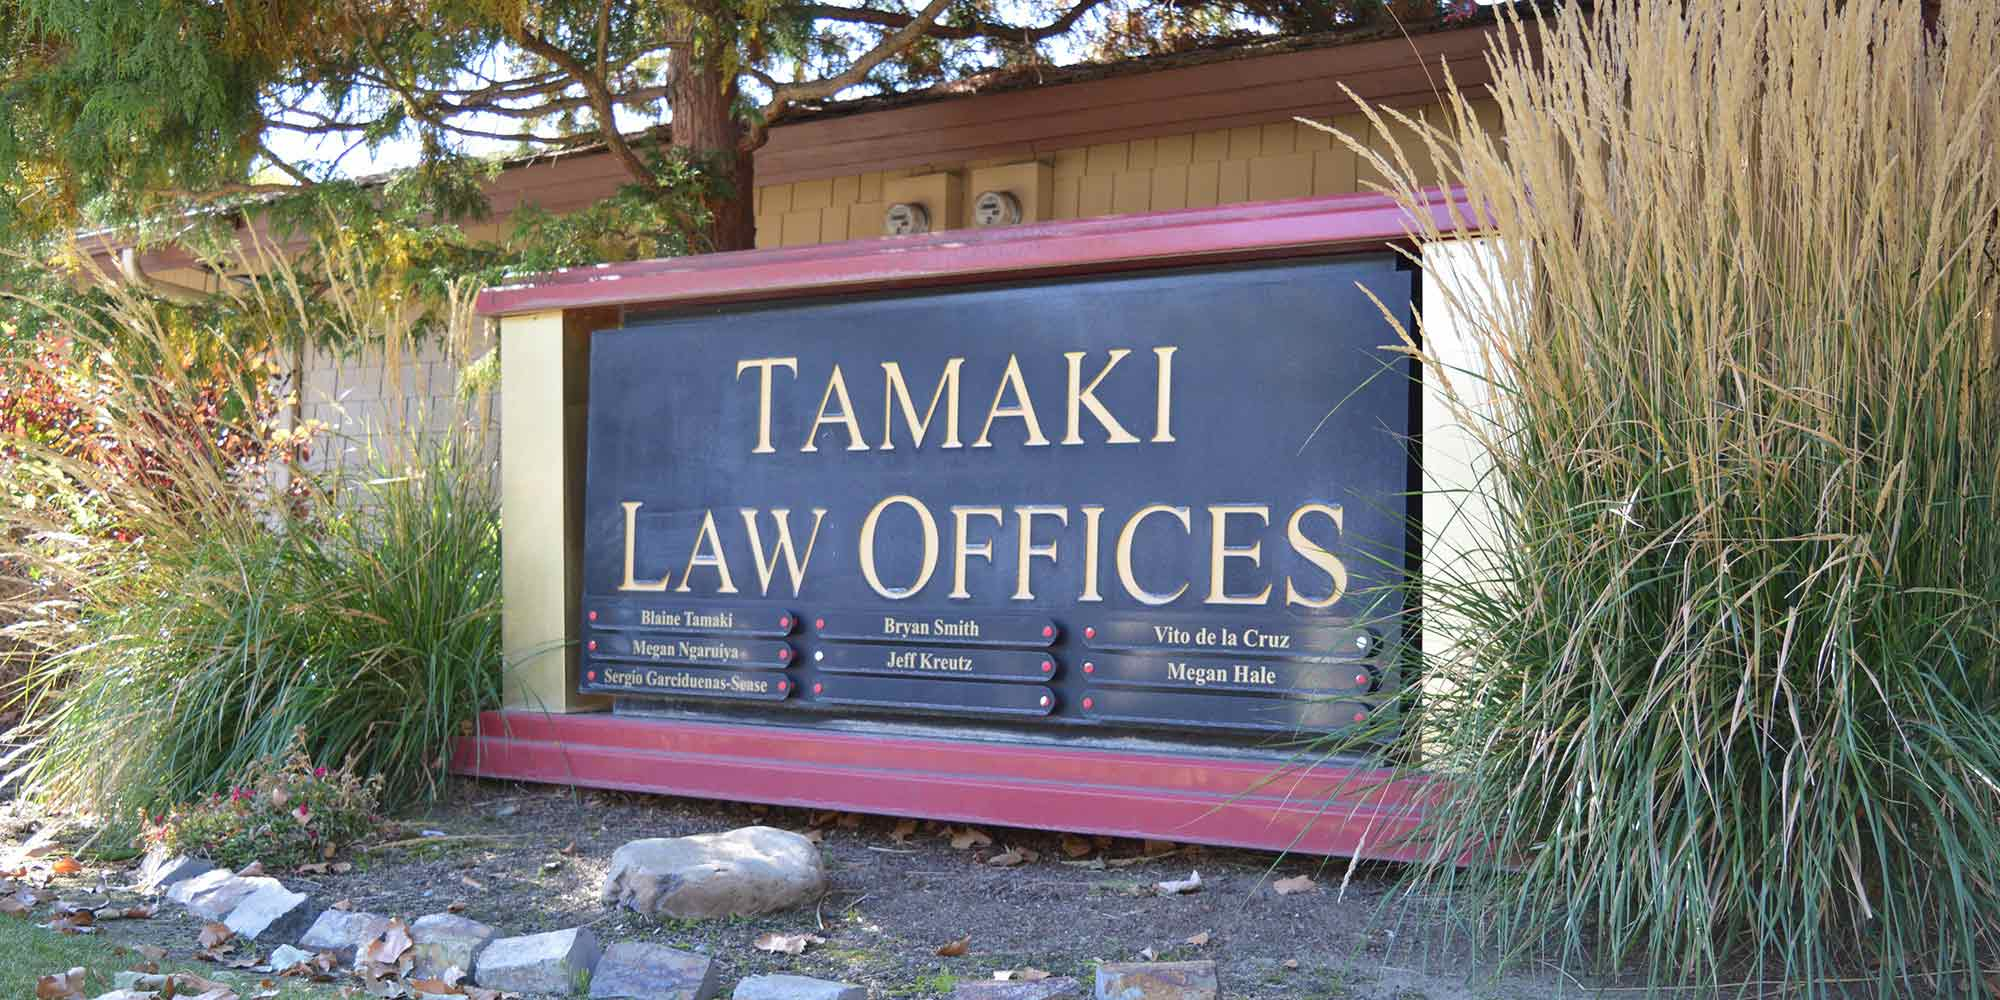 Tamaki Law Office sign